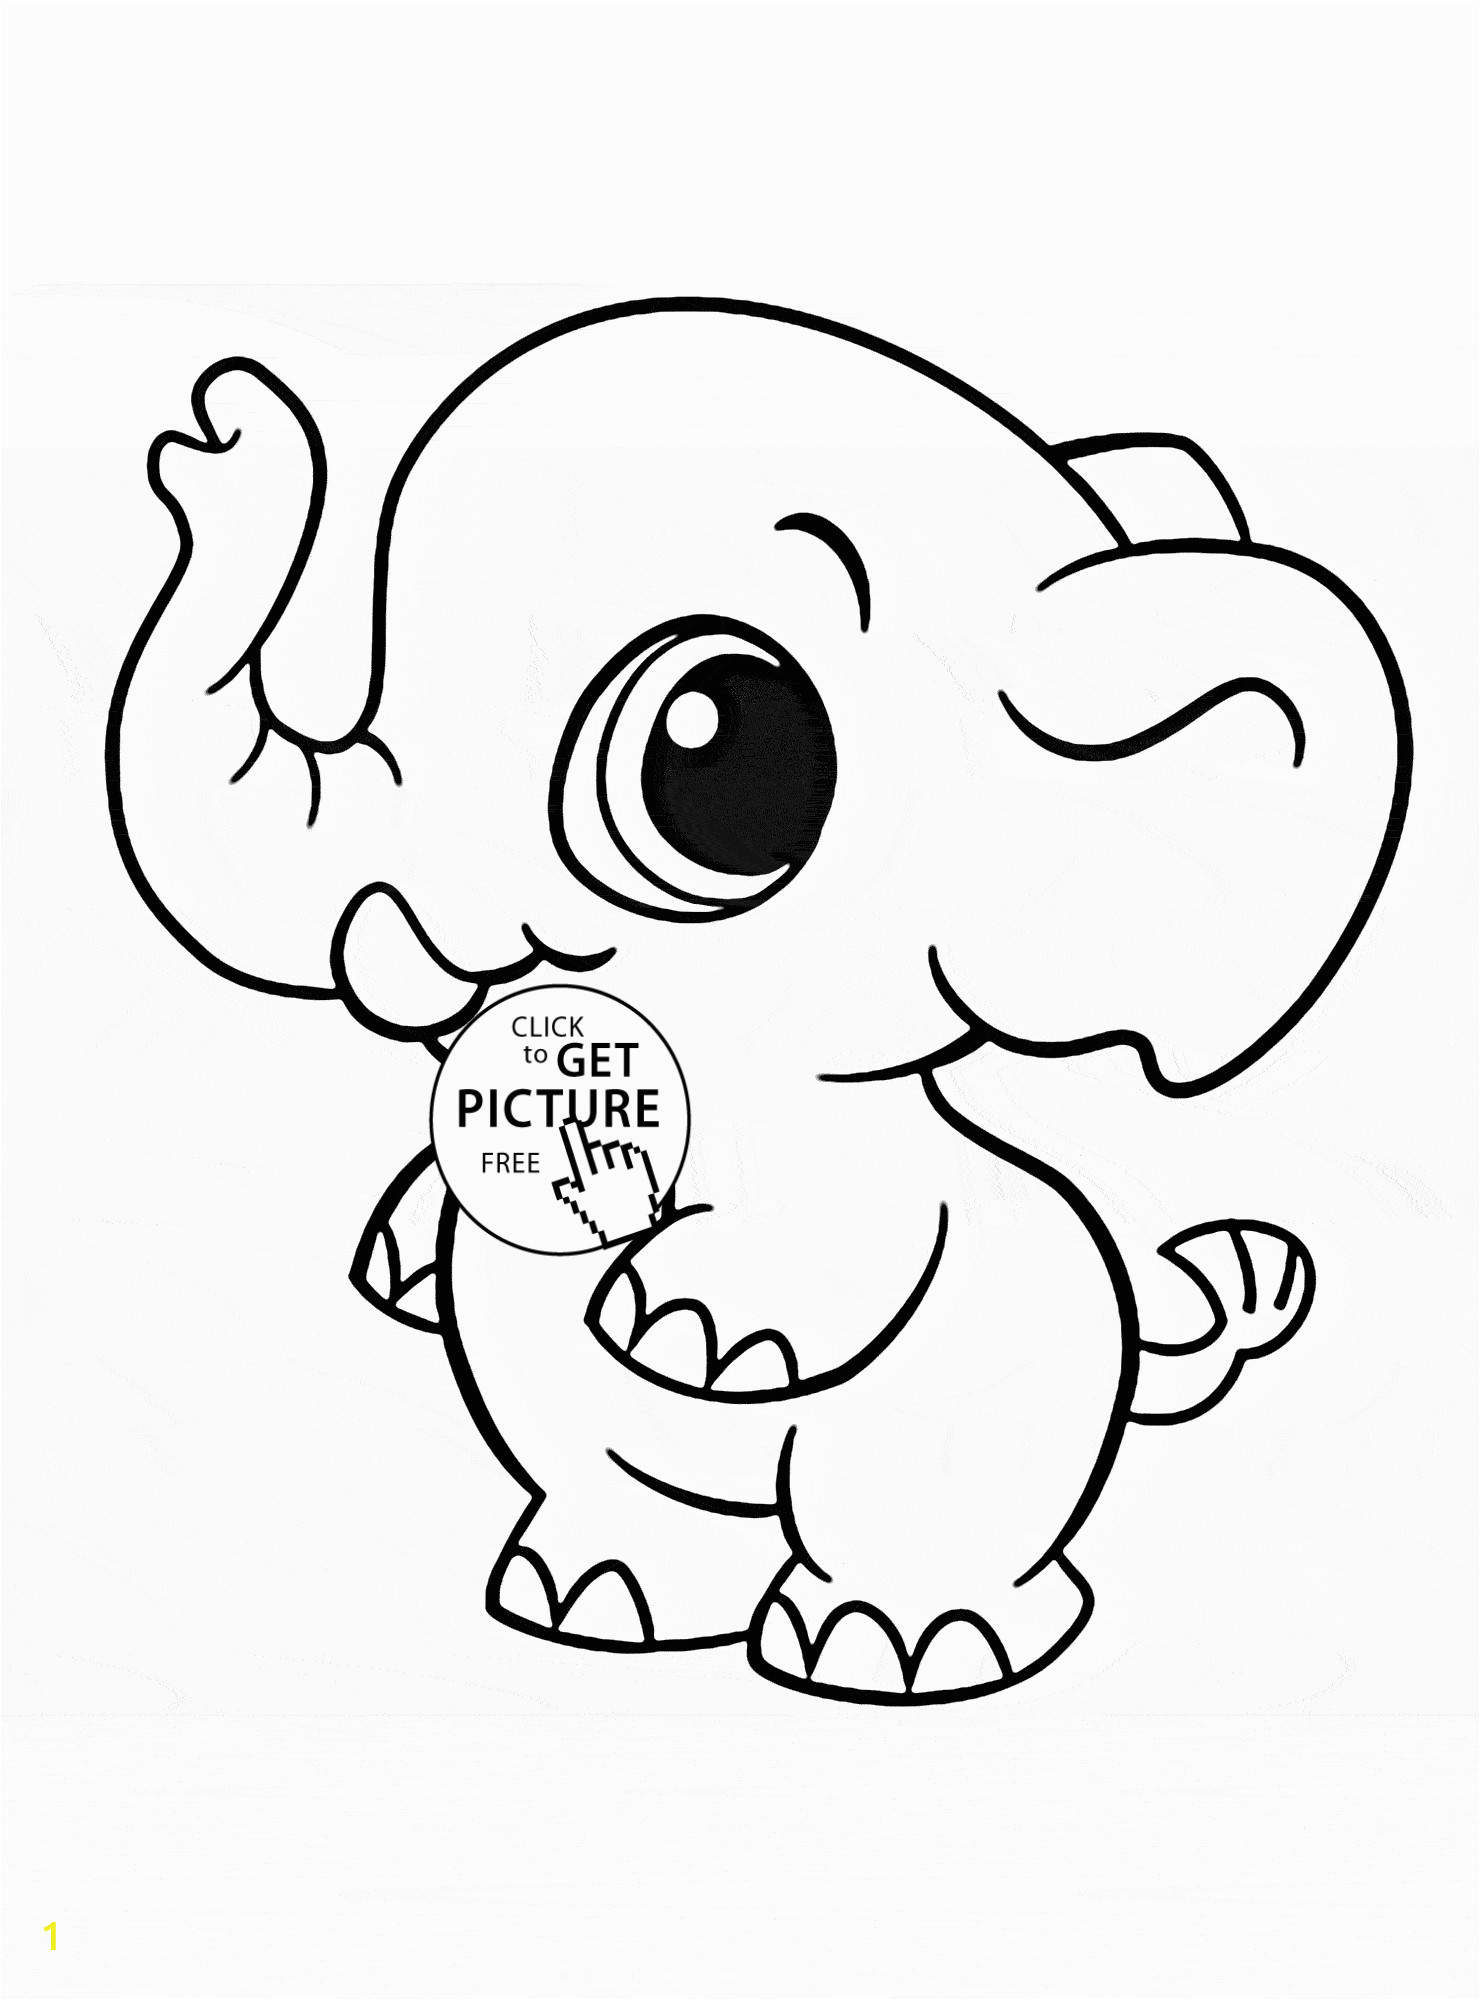 elephant cartoon coloring beautiful funny animals coloring page cute dog coloring pages of elephant cartoon coloring